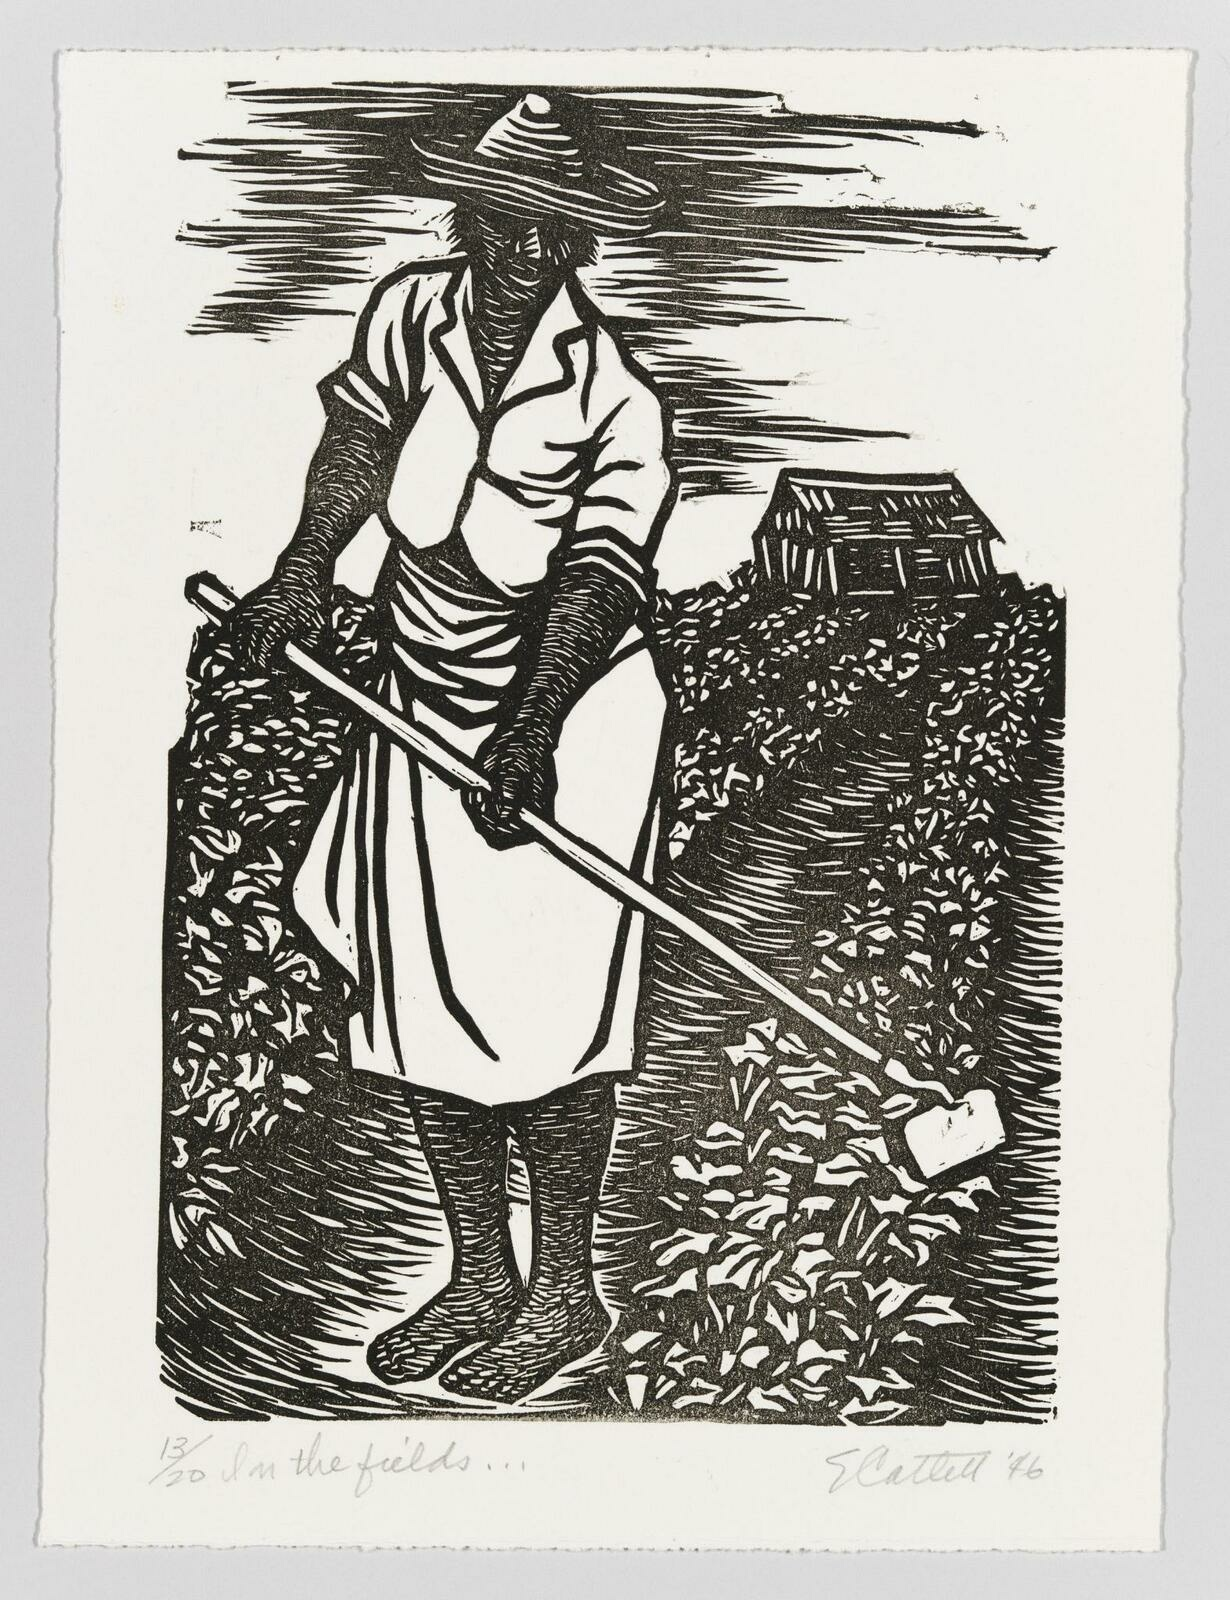 A Black woman wearing a simple white dress and straw hat using a hoe in a sprawling field with a small house visible in the background